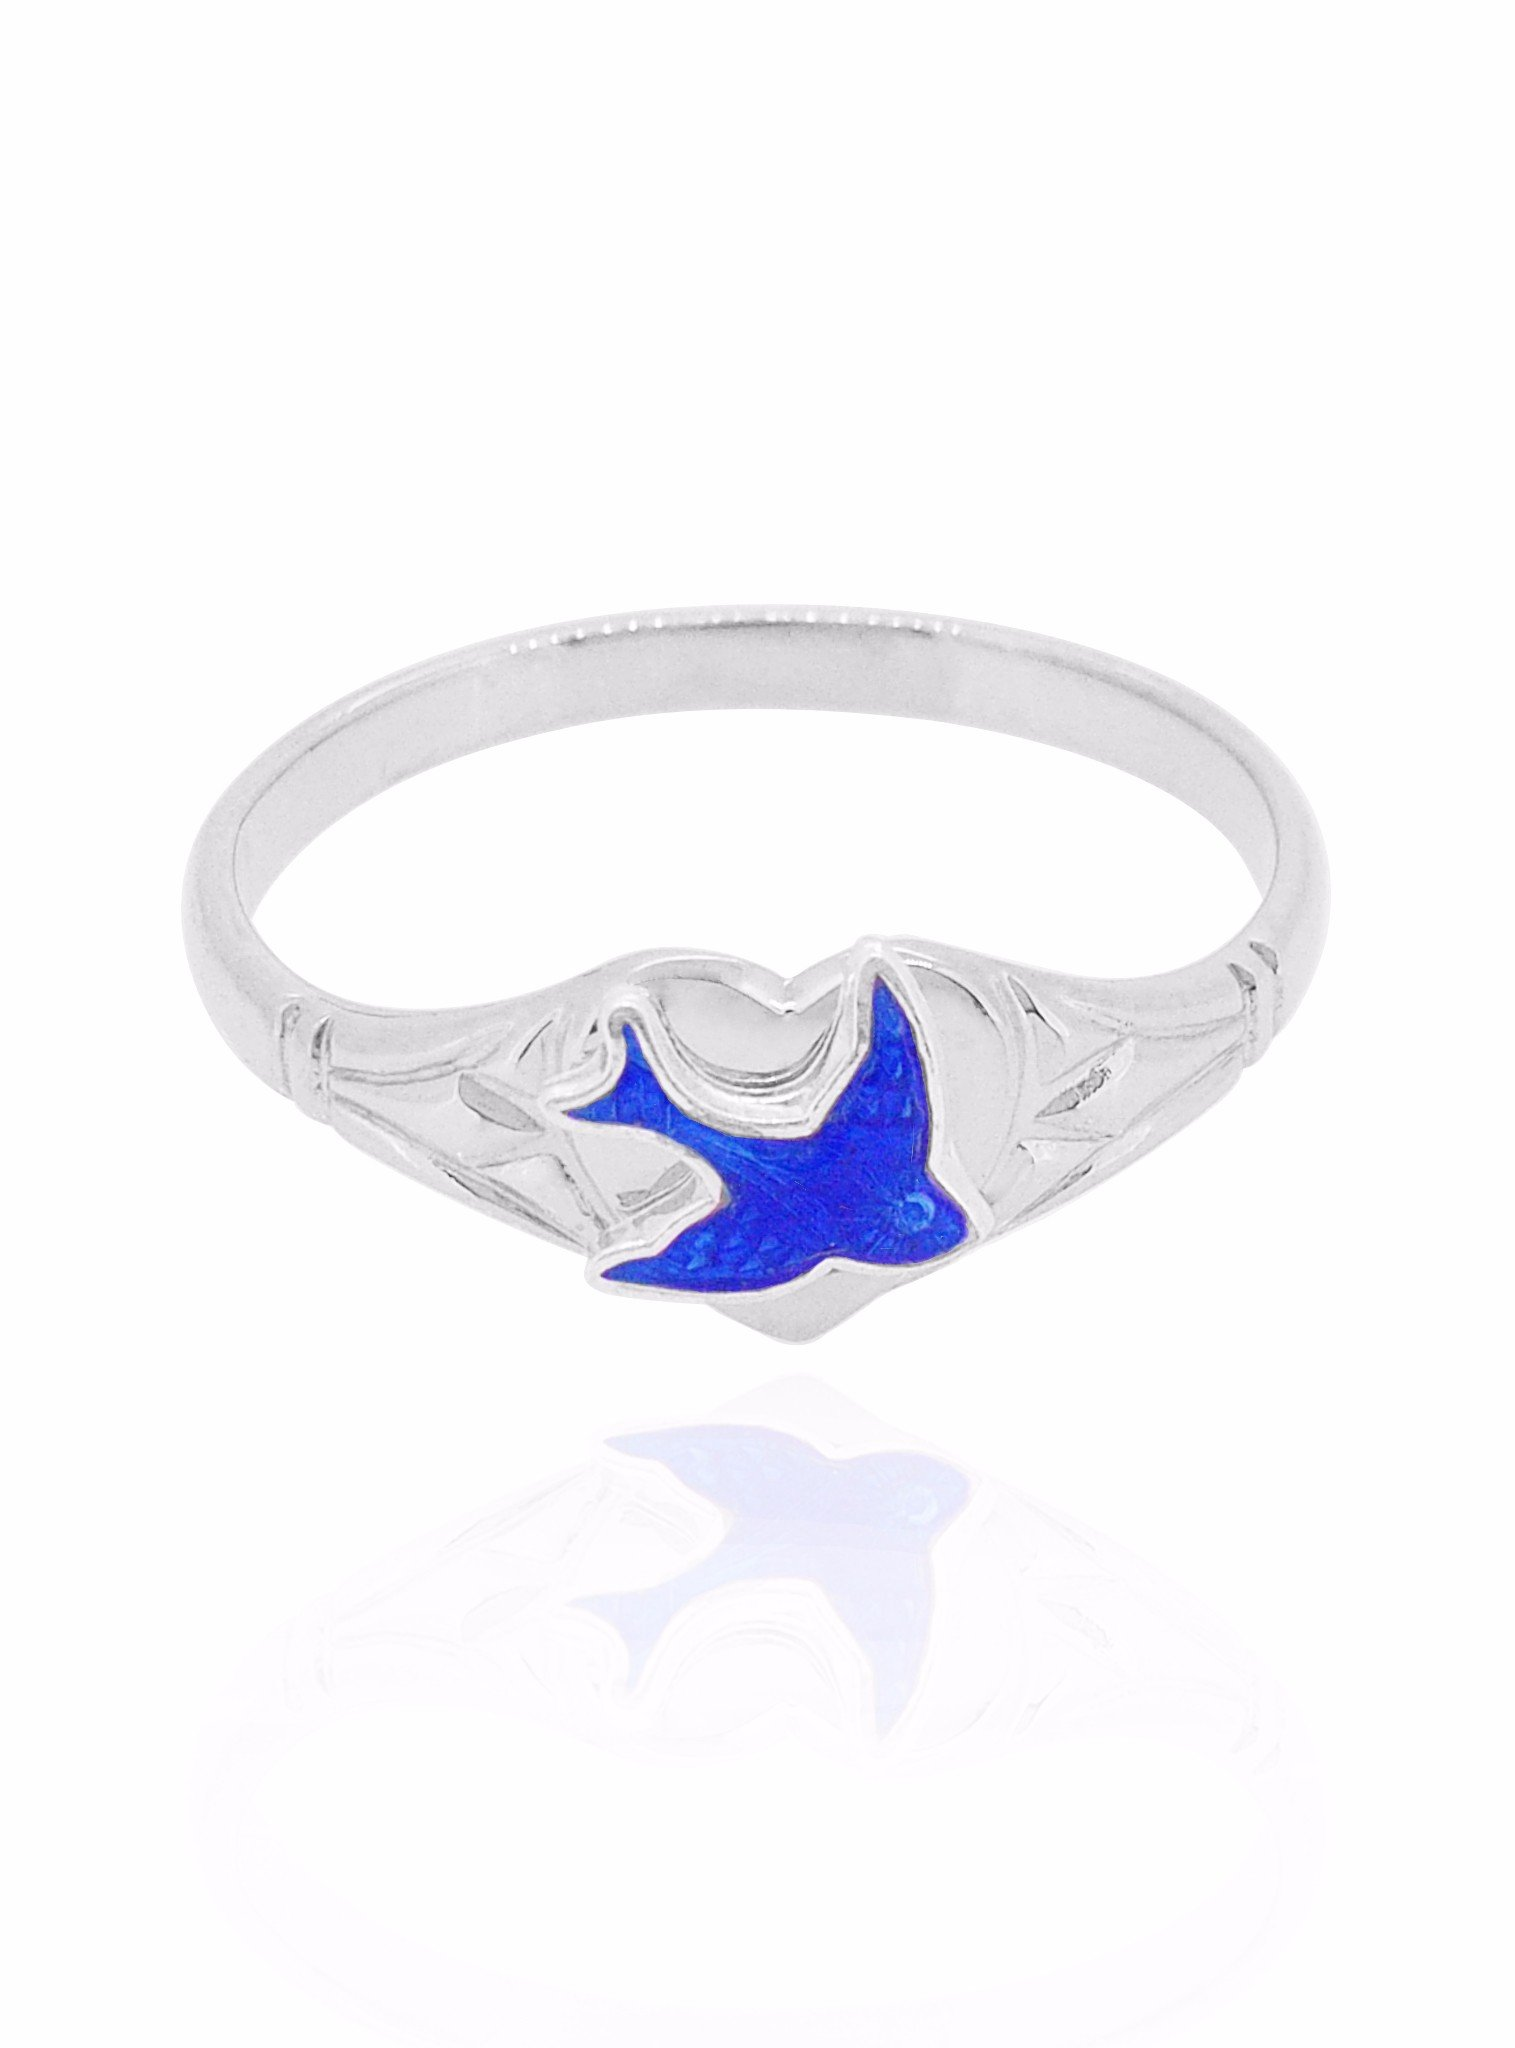 Bluebird of Happiness Heart Signet Ring in Sterling Silver